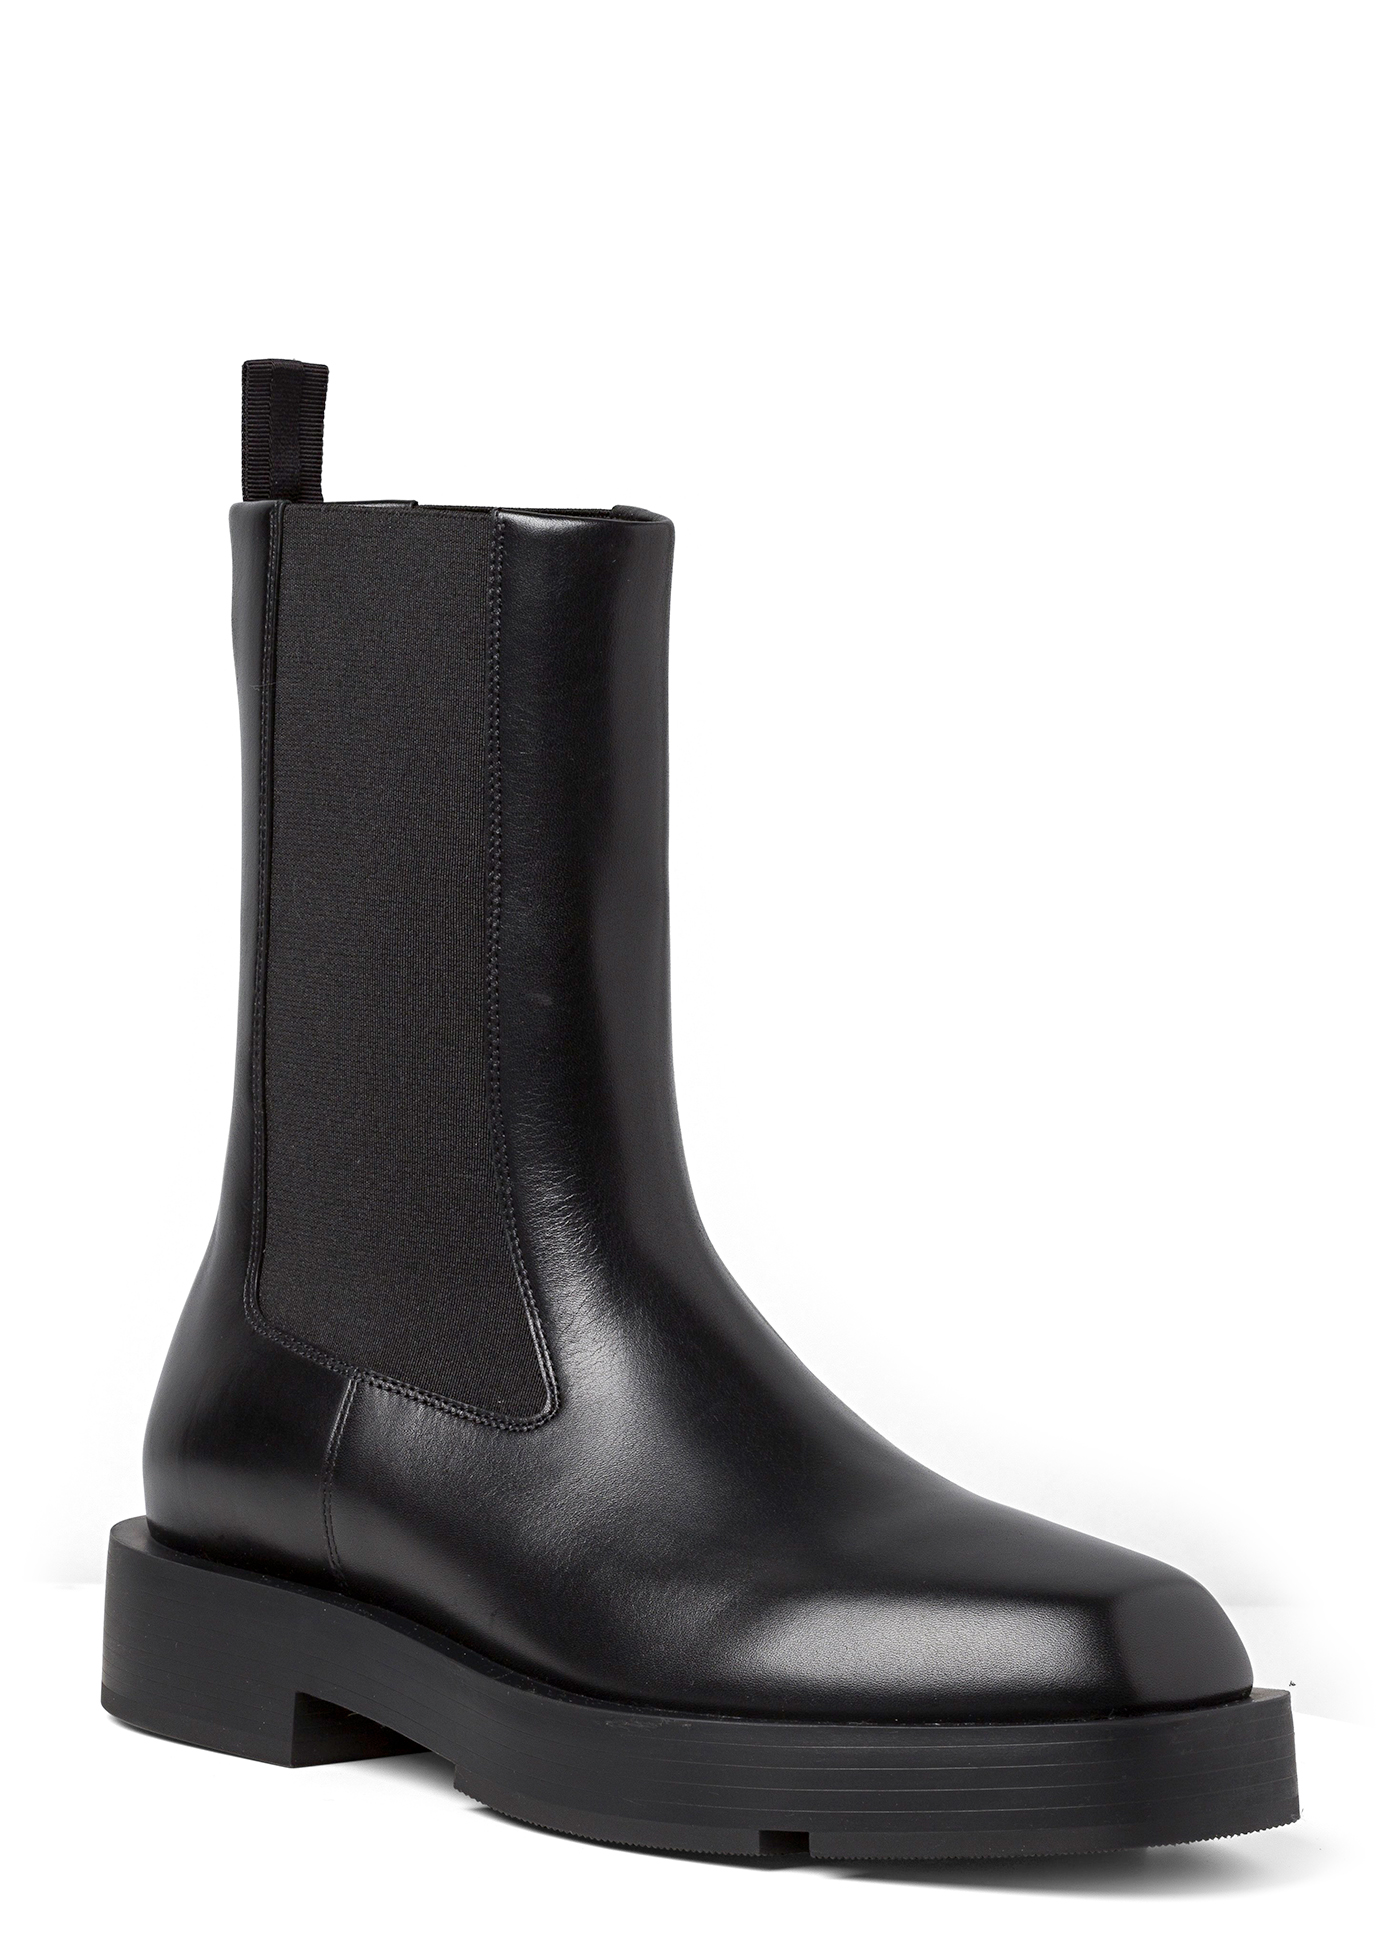 SQUARED FLAT CHELSEA ANKLE BOOT image number 1